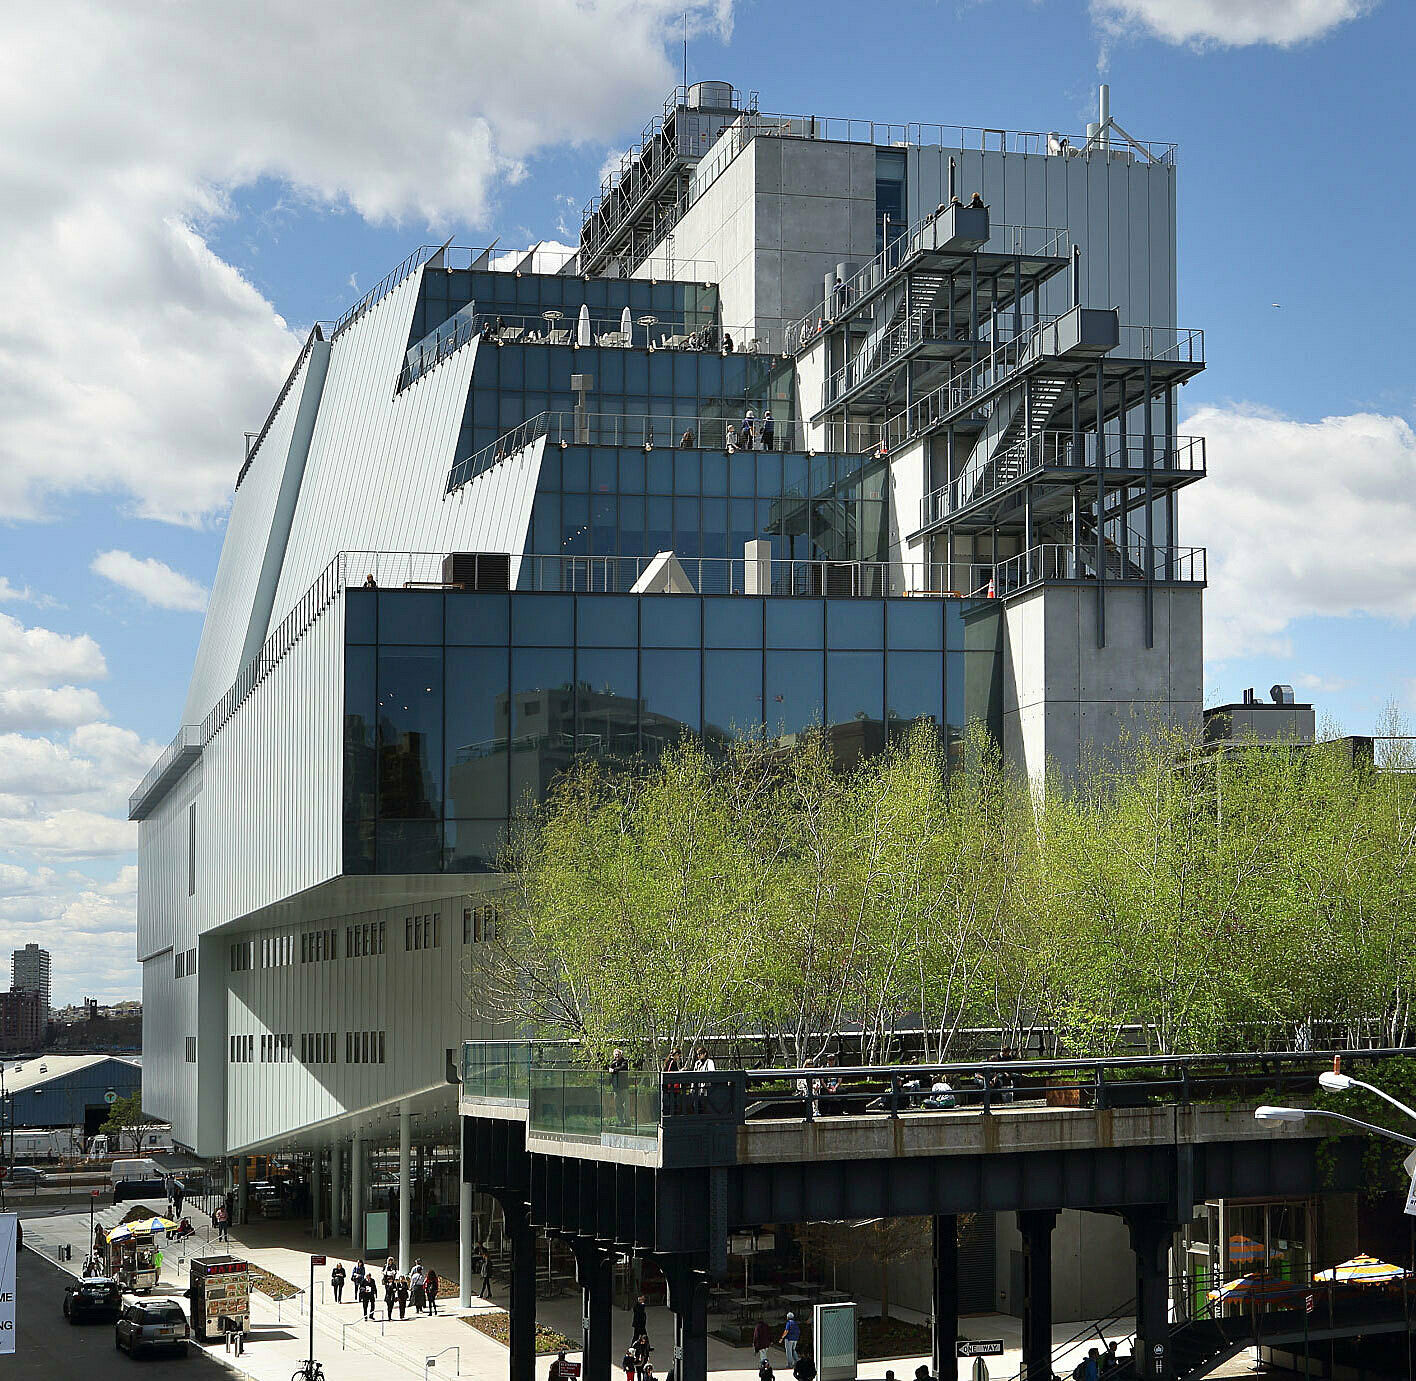 The Whitney Museum building with the High Line park in front of it